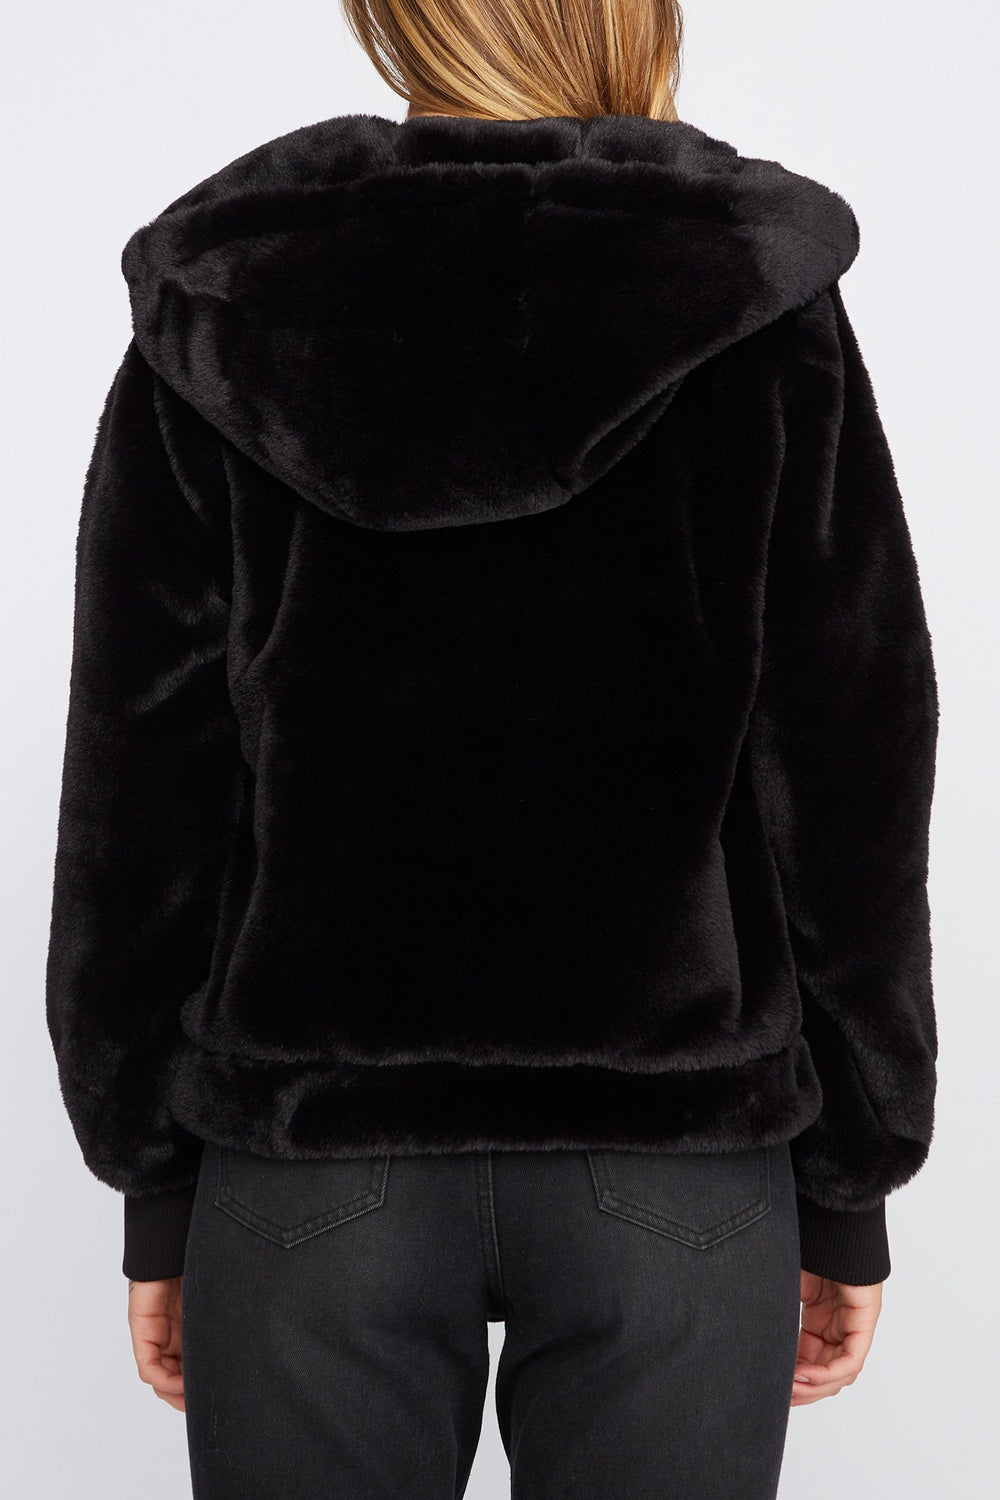 Zoo York Womens Faux-Fur Coat Black